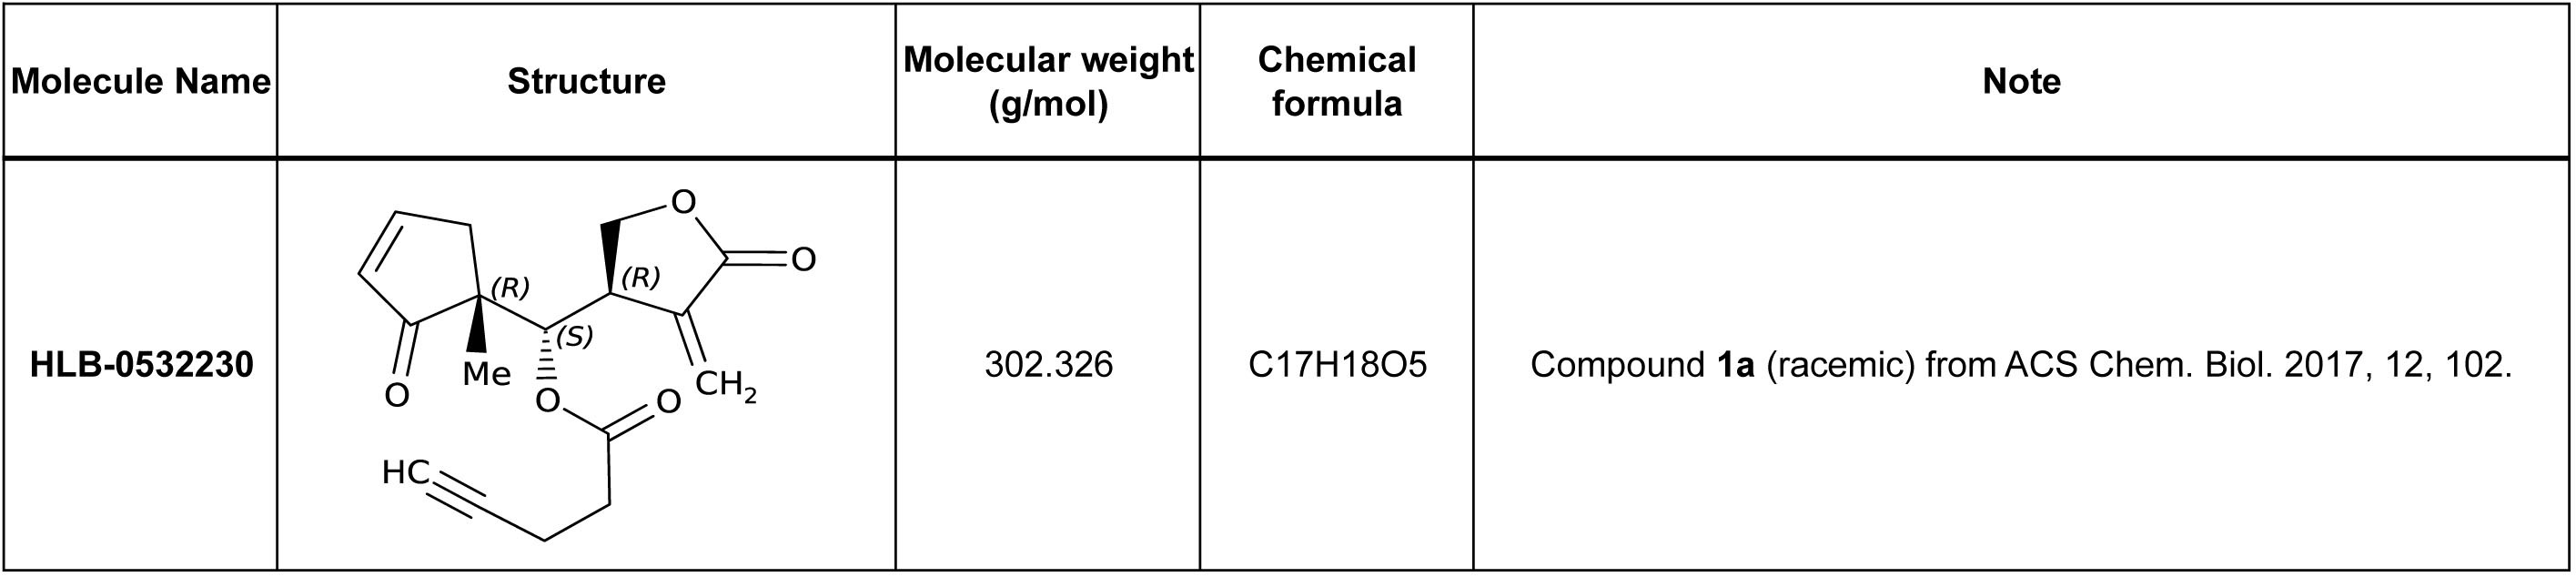 Harki lab chemical probes list - 30-Nov-2017